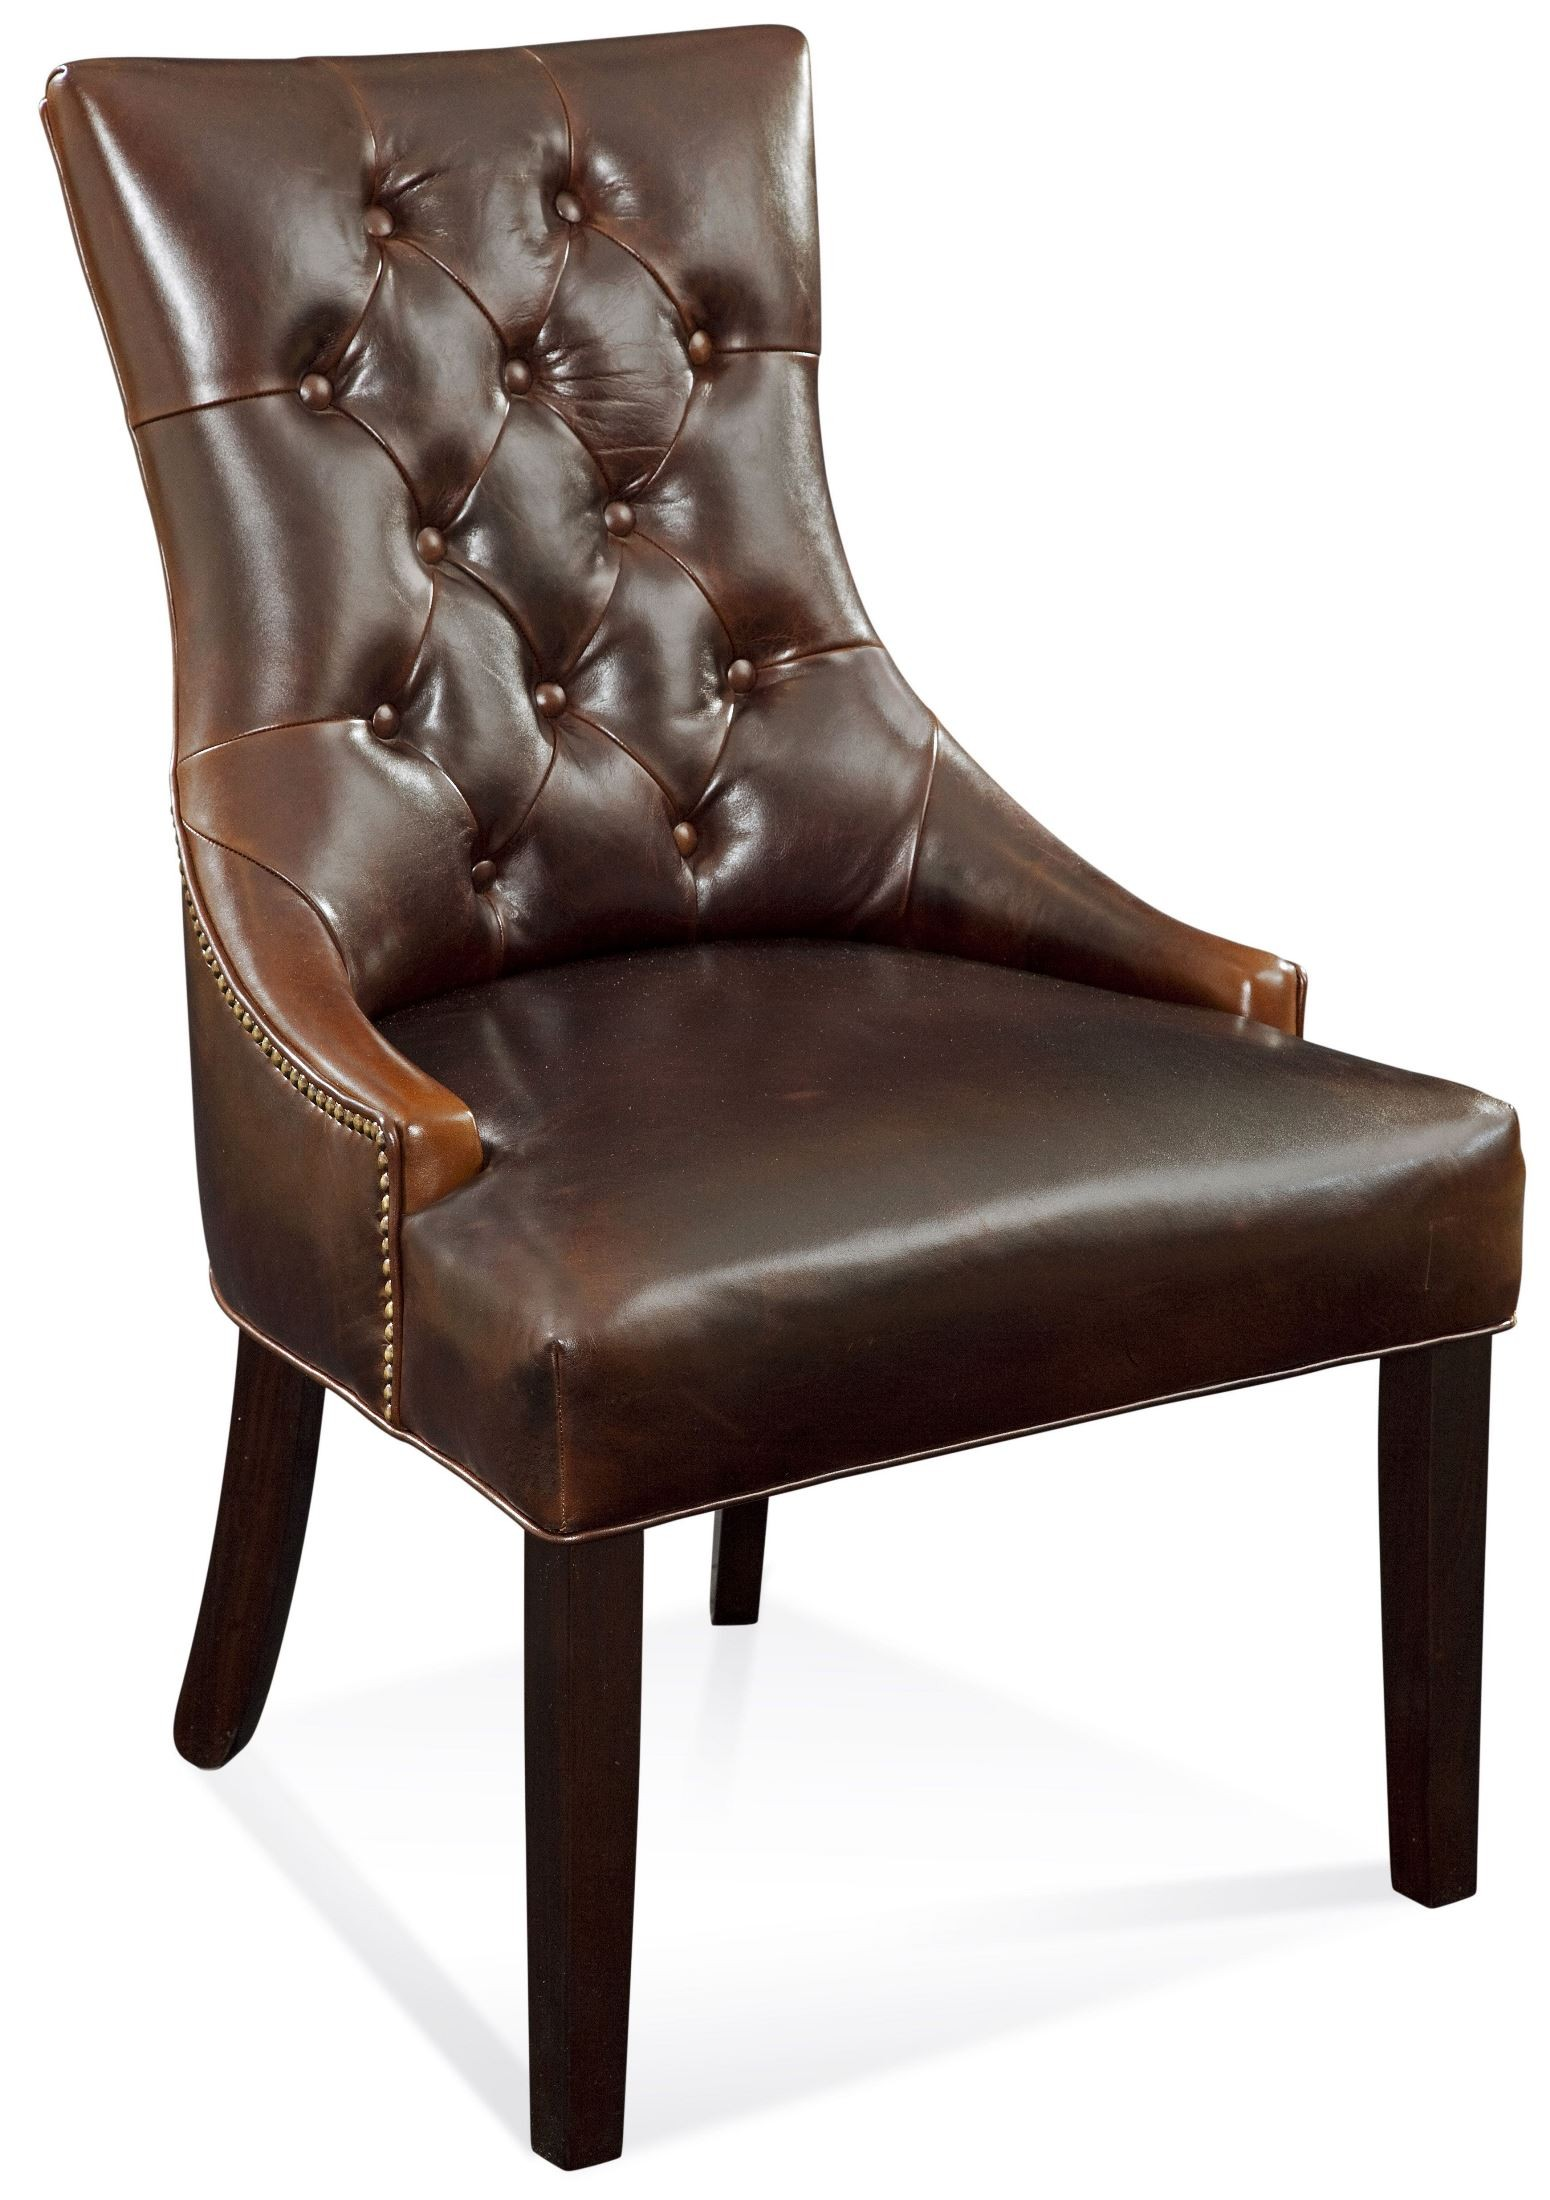 Leather Dining Chairs With Nailheads Fortnum Brown Leather Tufted Nailhead Parson Chair Dpch15